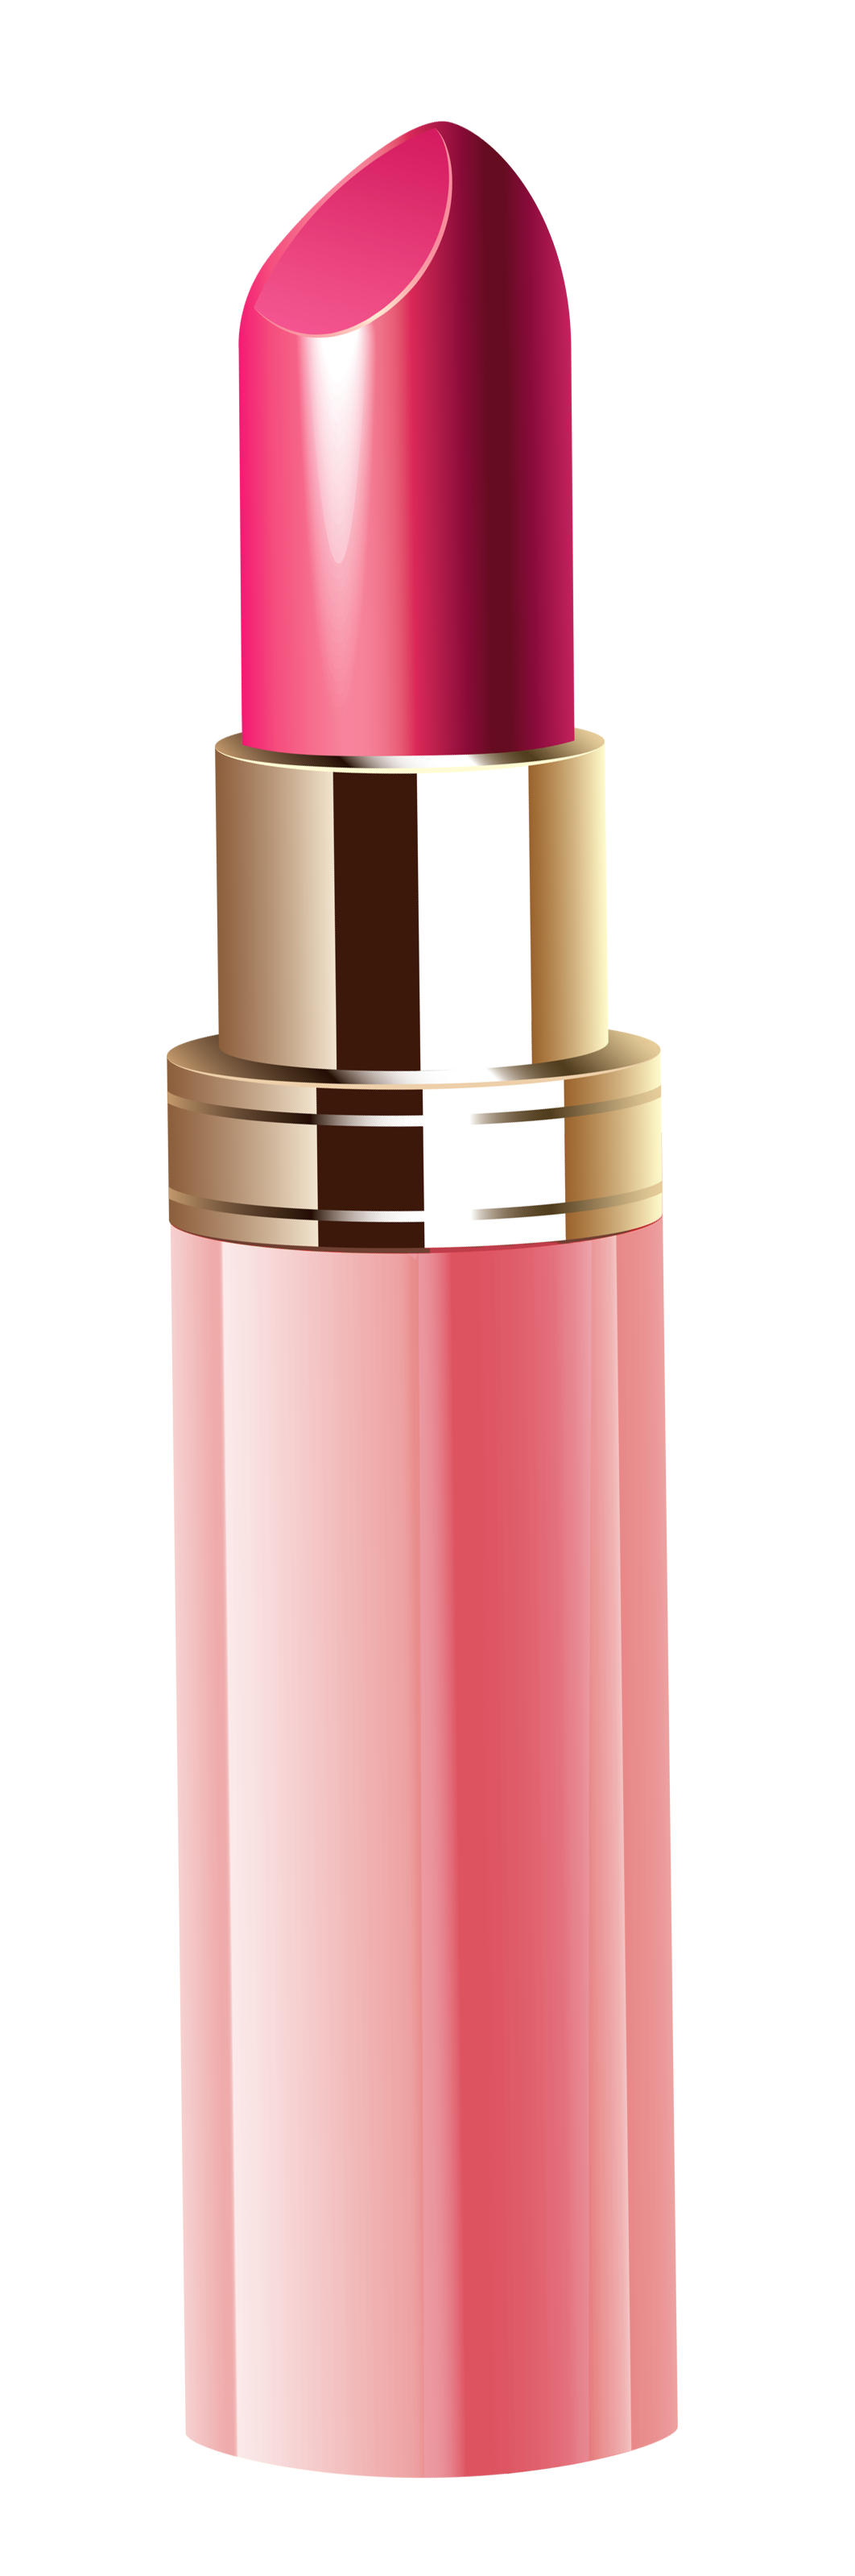 Png images free download. Lipstick clipart transparent background